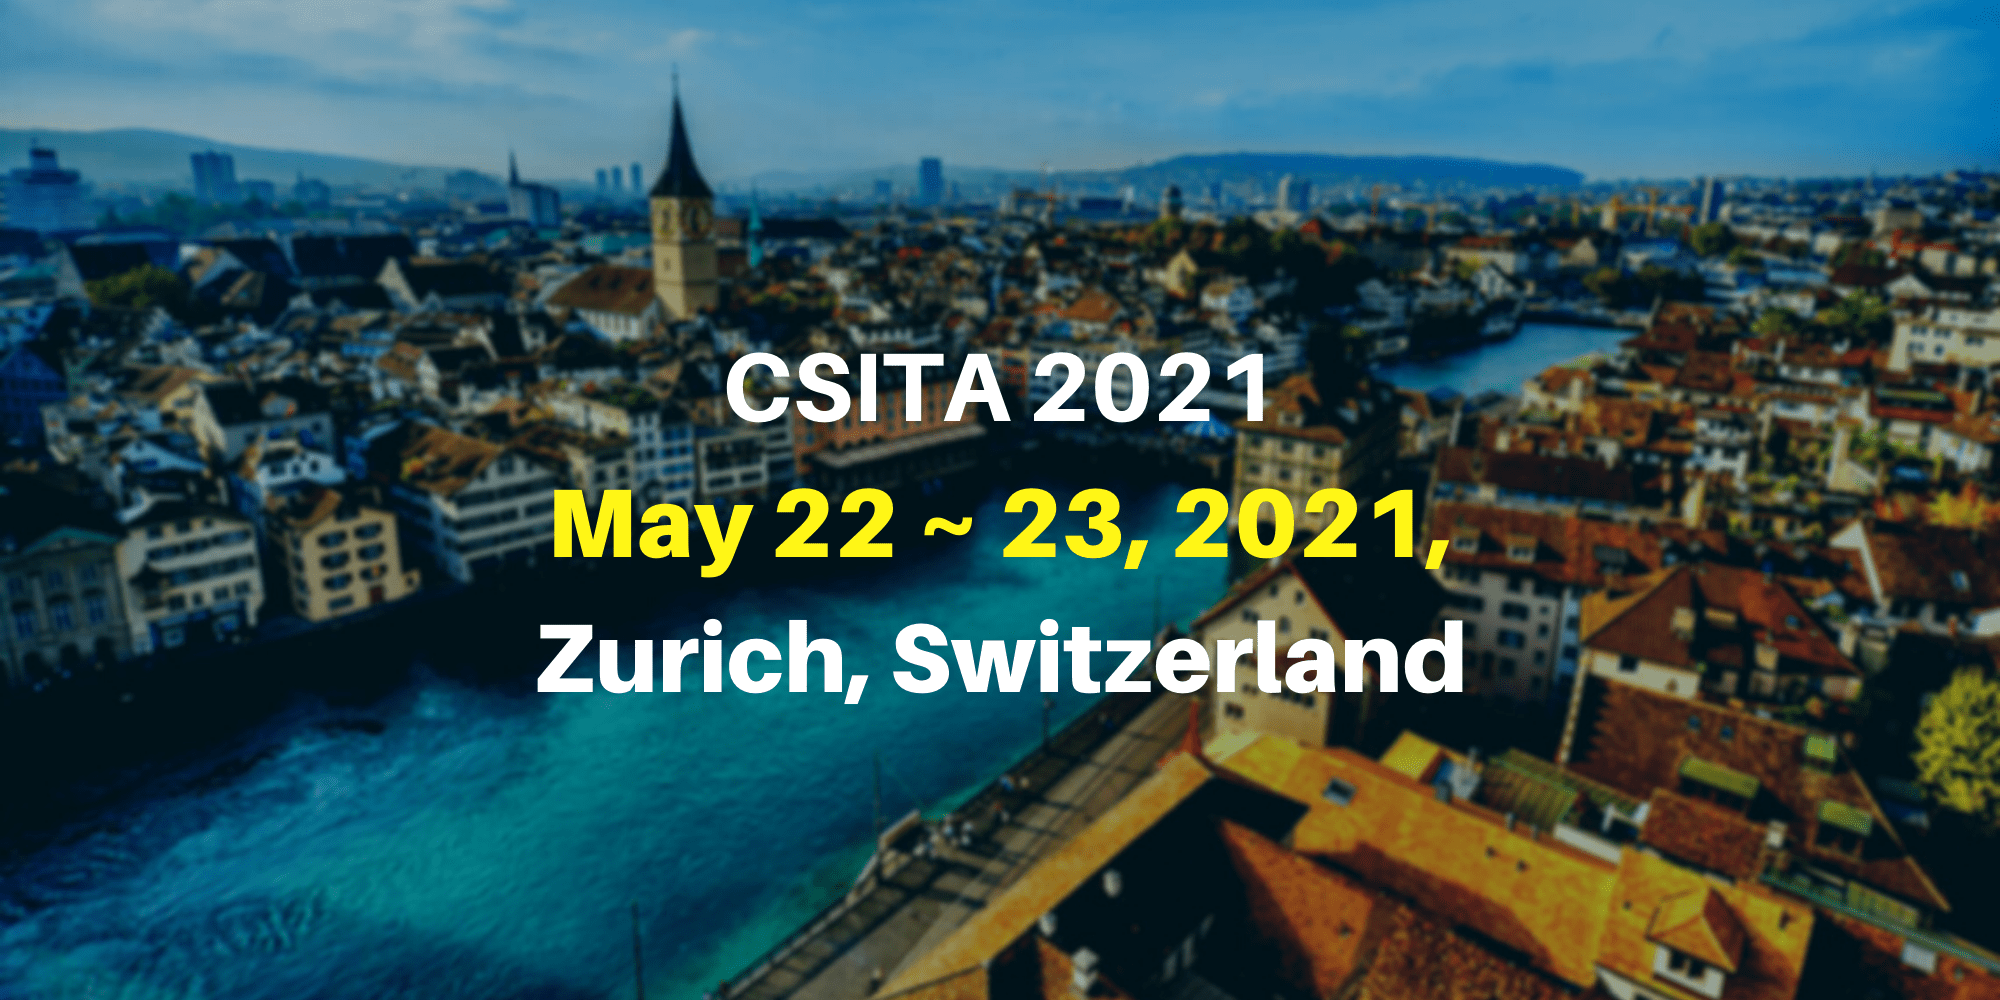 7th International Conference on Computer Science, Information Technology and Applications (CSITA 2021)